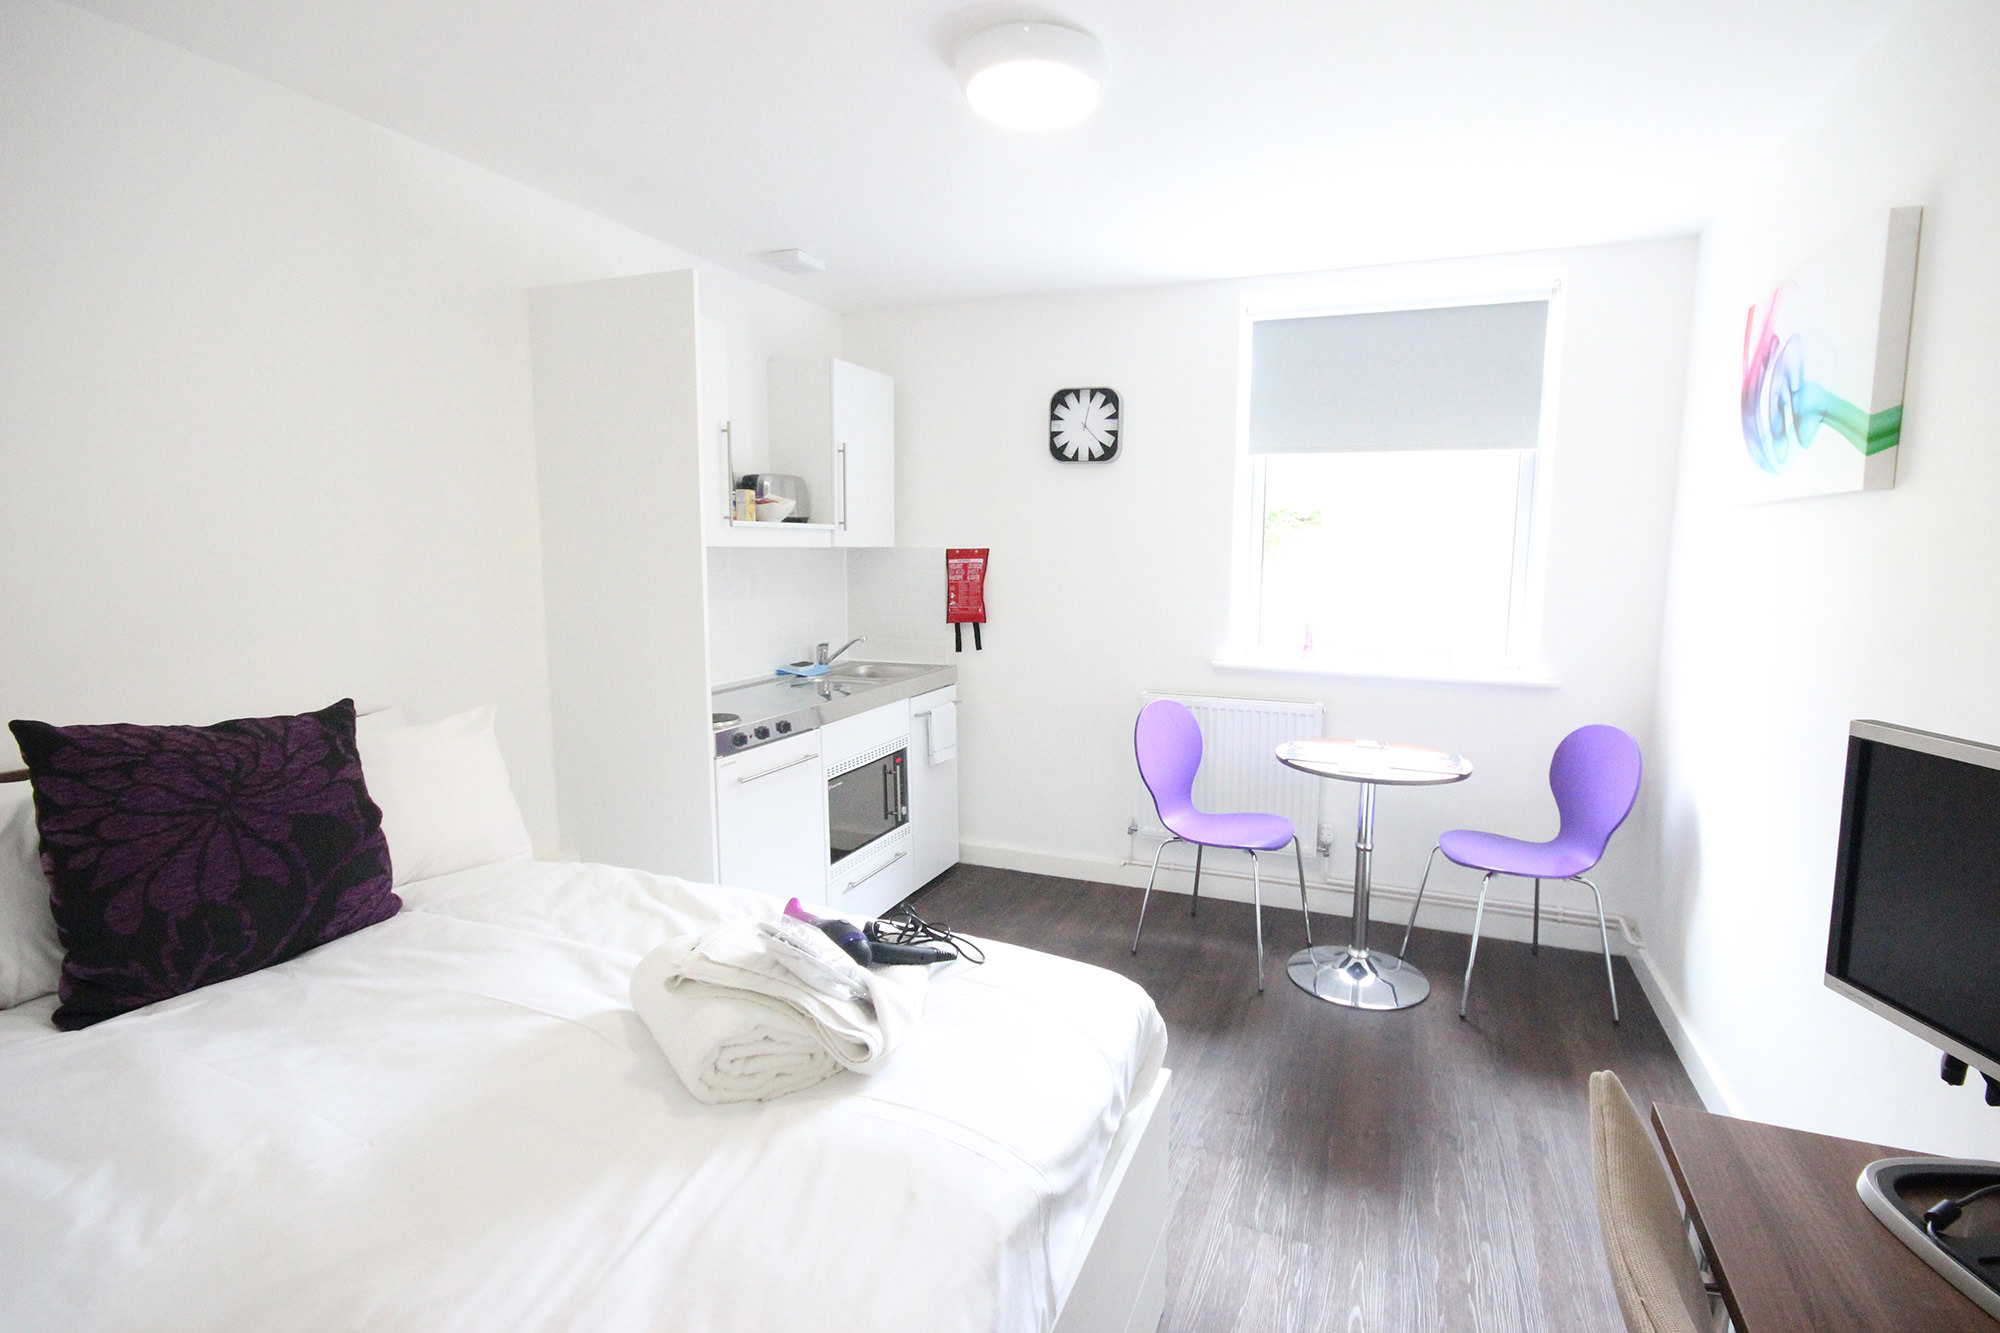 1 bedroom efficiency apartments studio apartment at park house in luton 13912